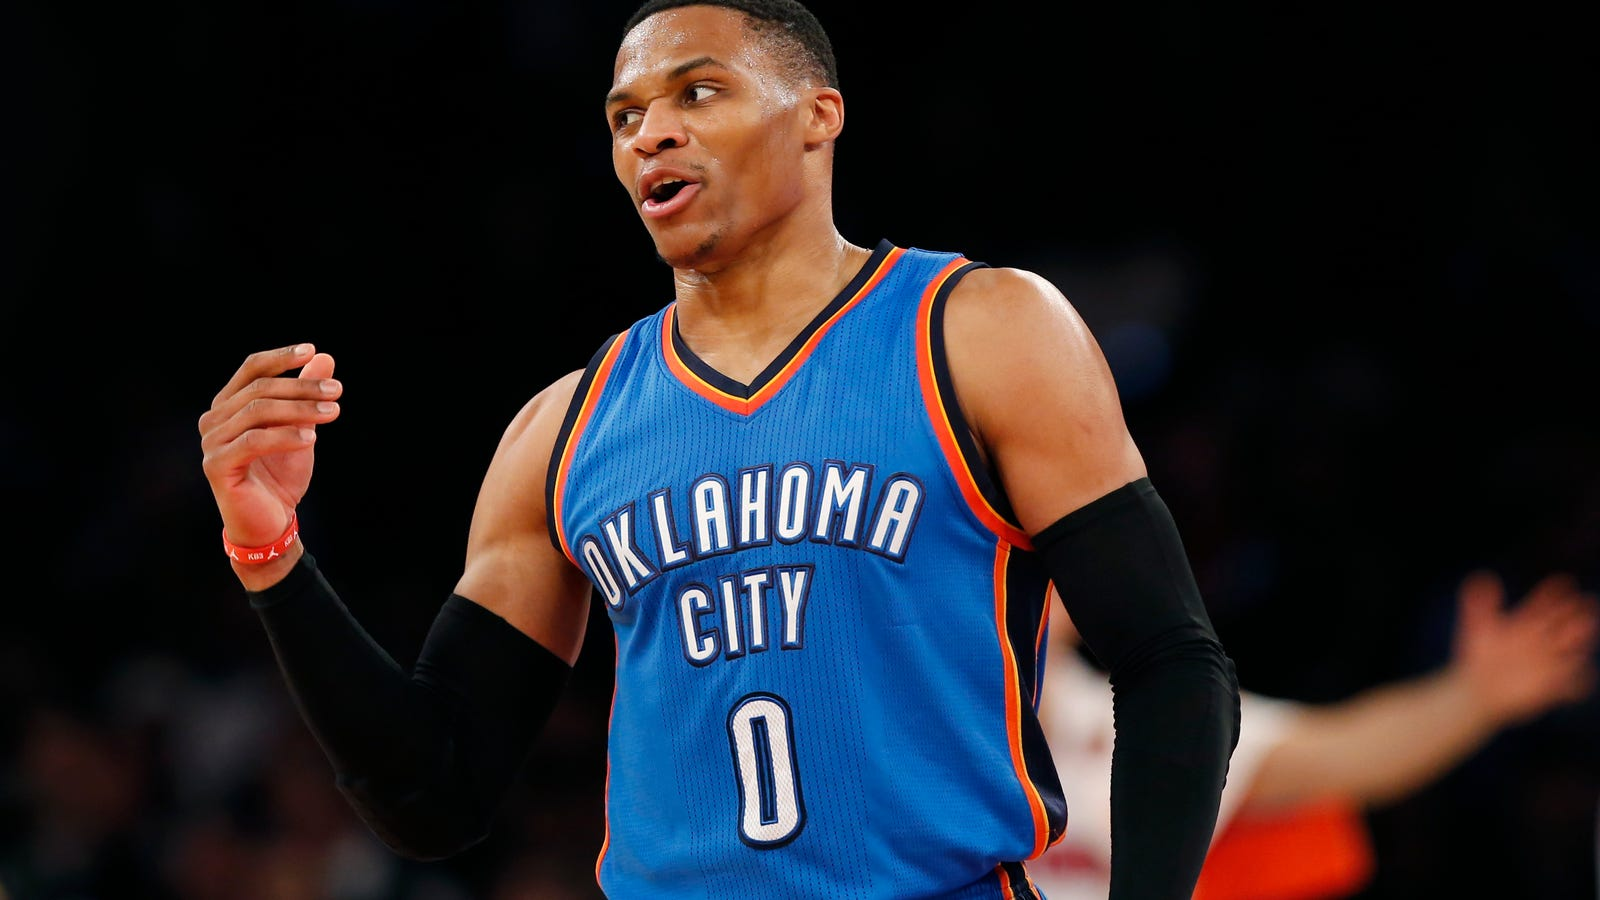 Russell Westbrook Ties Oscar Robertson Triple Double Record besides Russell Westbrook Triple Double Oscar Record Oklahoma City Thunder Win Grizzlies So Close Amazing Still Things Stats as well Game Preview Phoenix Suns Host Thunder Record Seeking Westbrook in addition Oscar Robertson also Michael Jordans Streak Of 10 Triple Doubles In 11 Games. on oscar robertson triple double stats